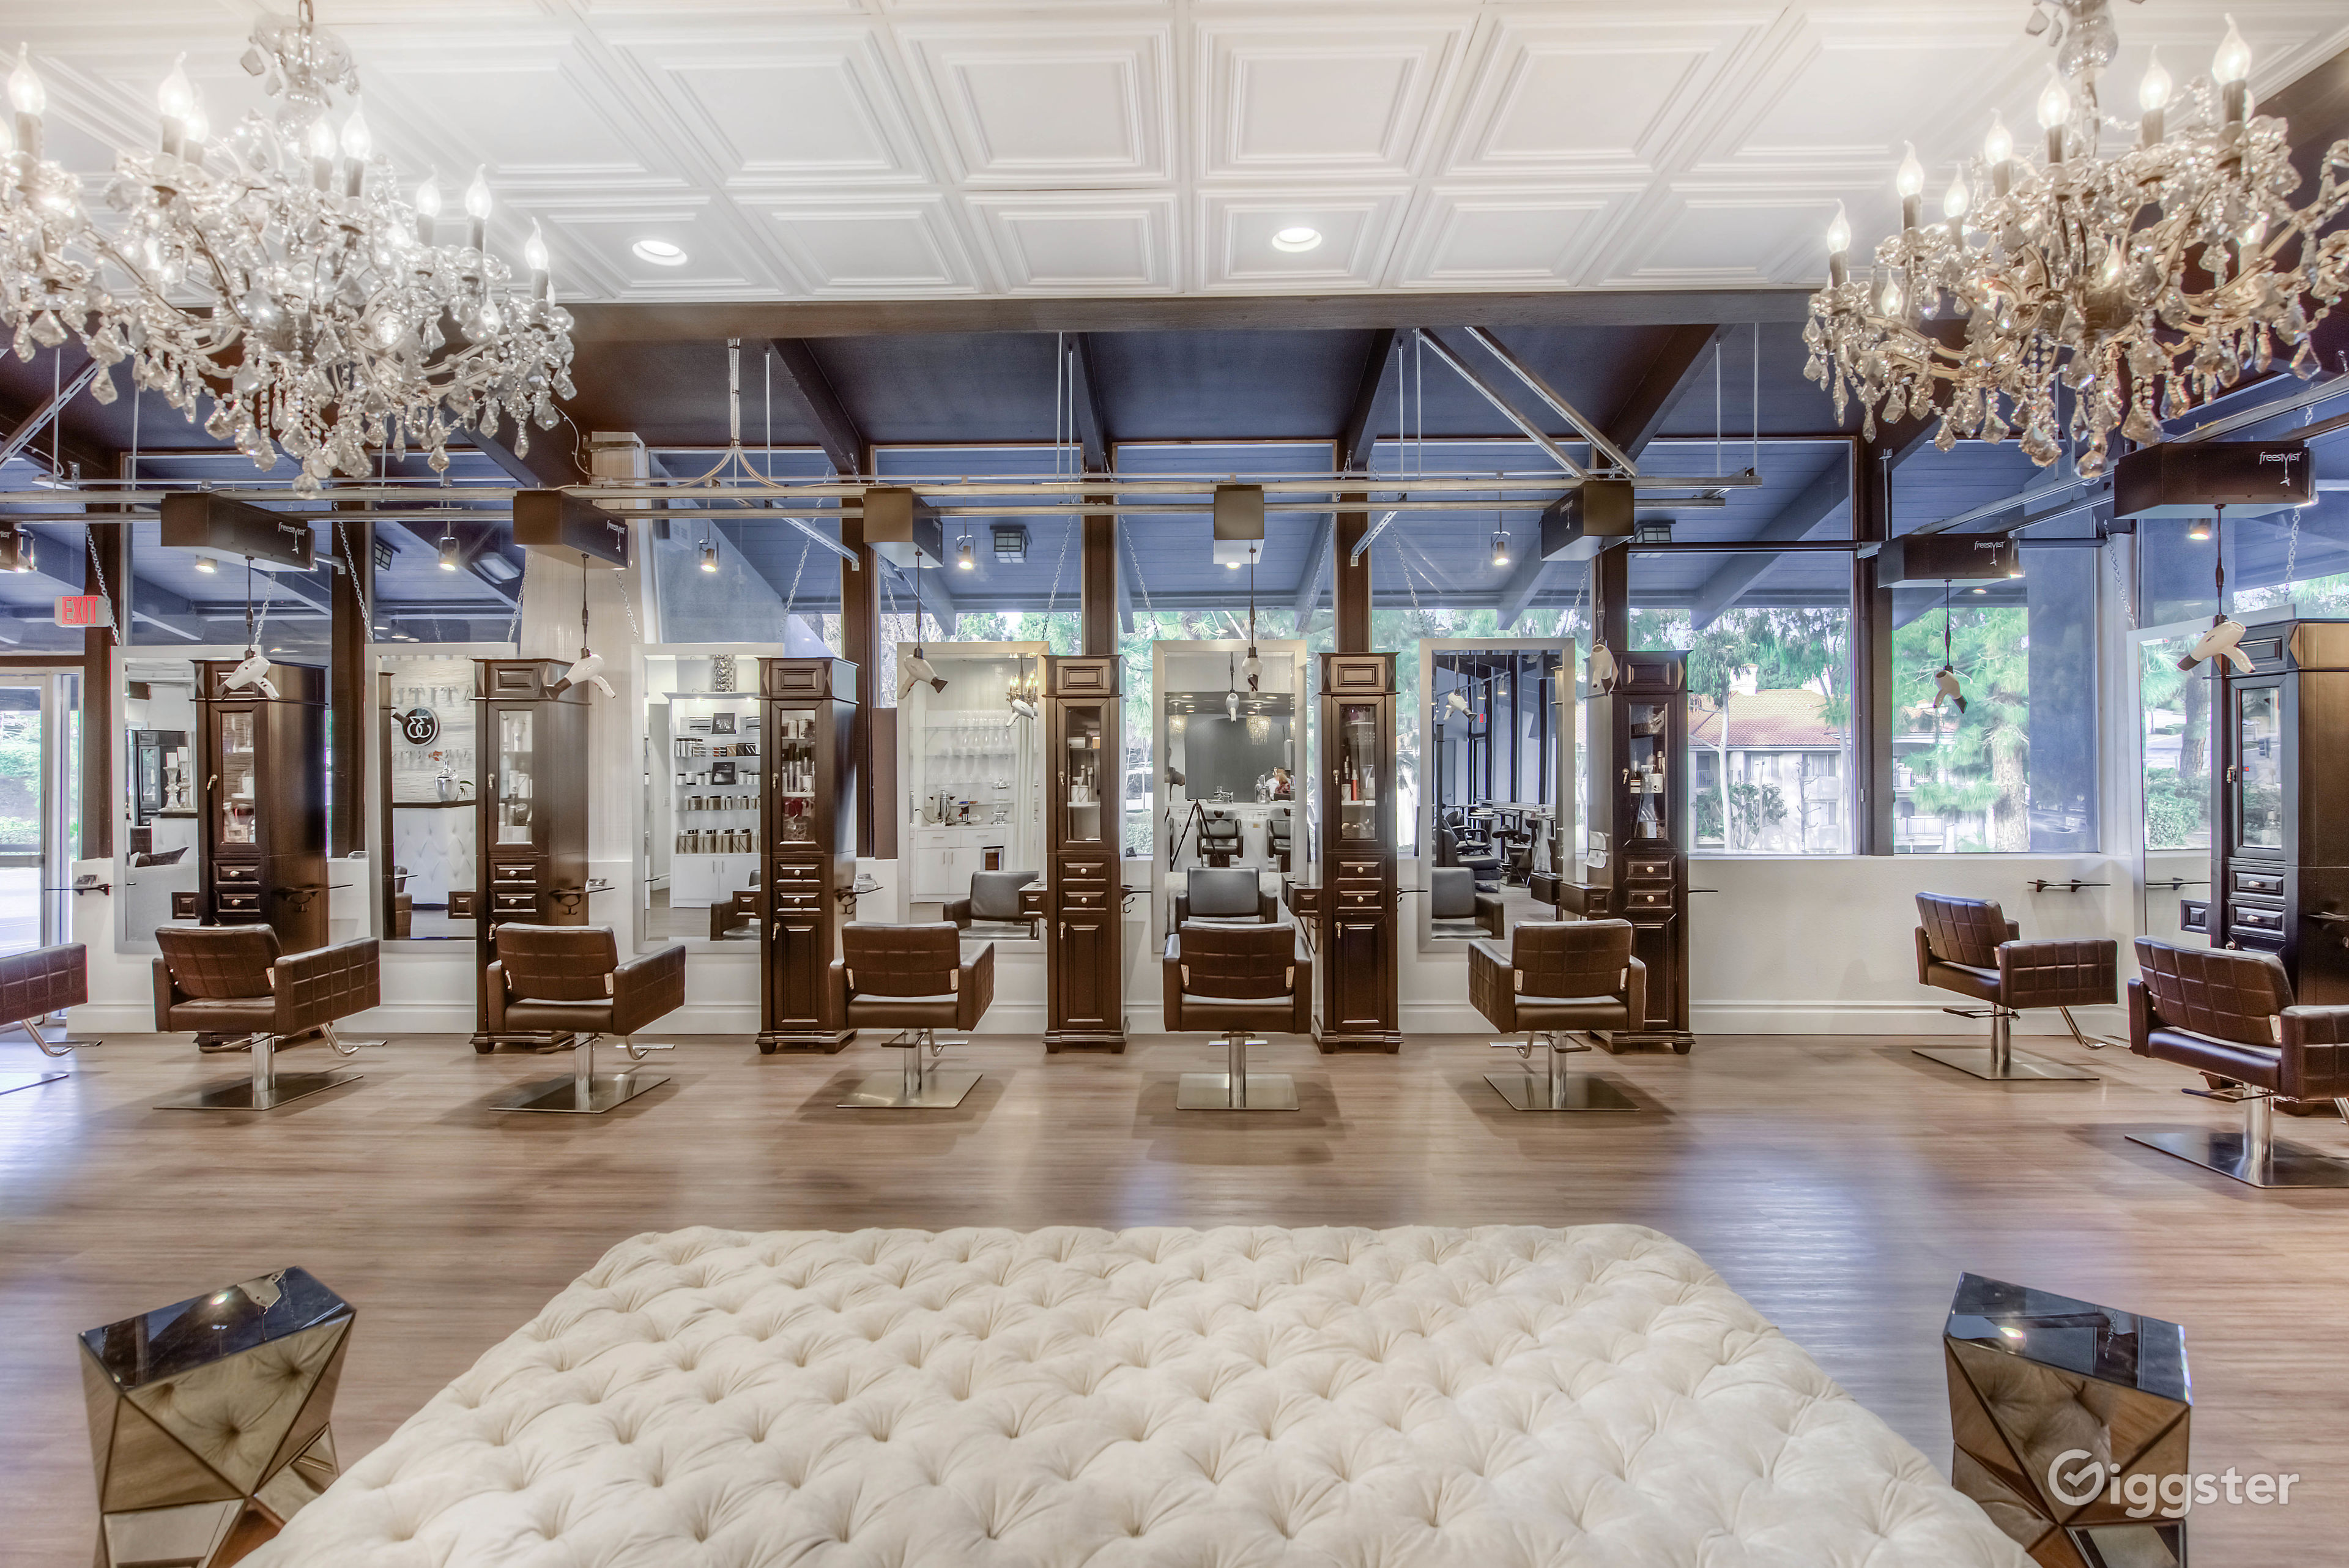 Luxury Hair Salon Rent This Location On Giggster